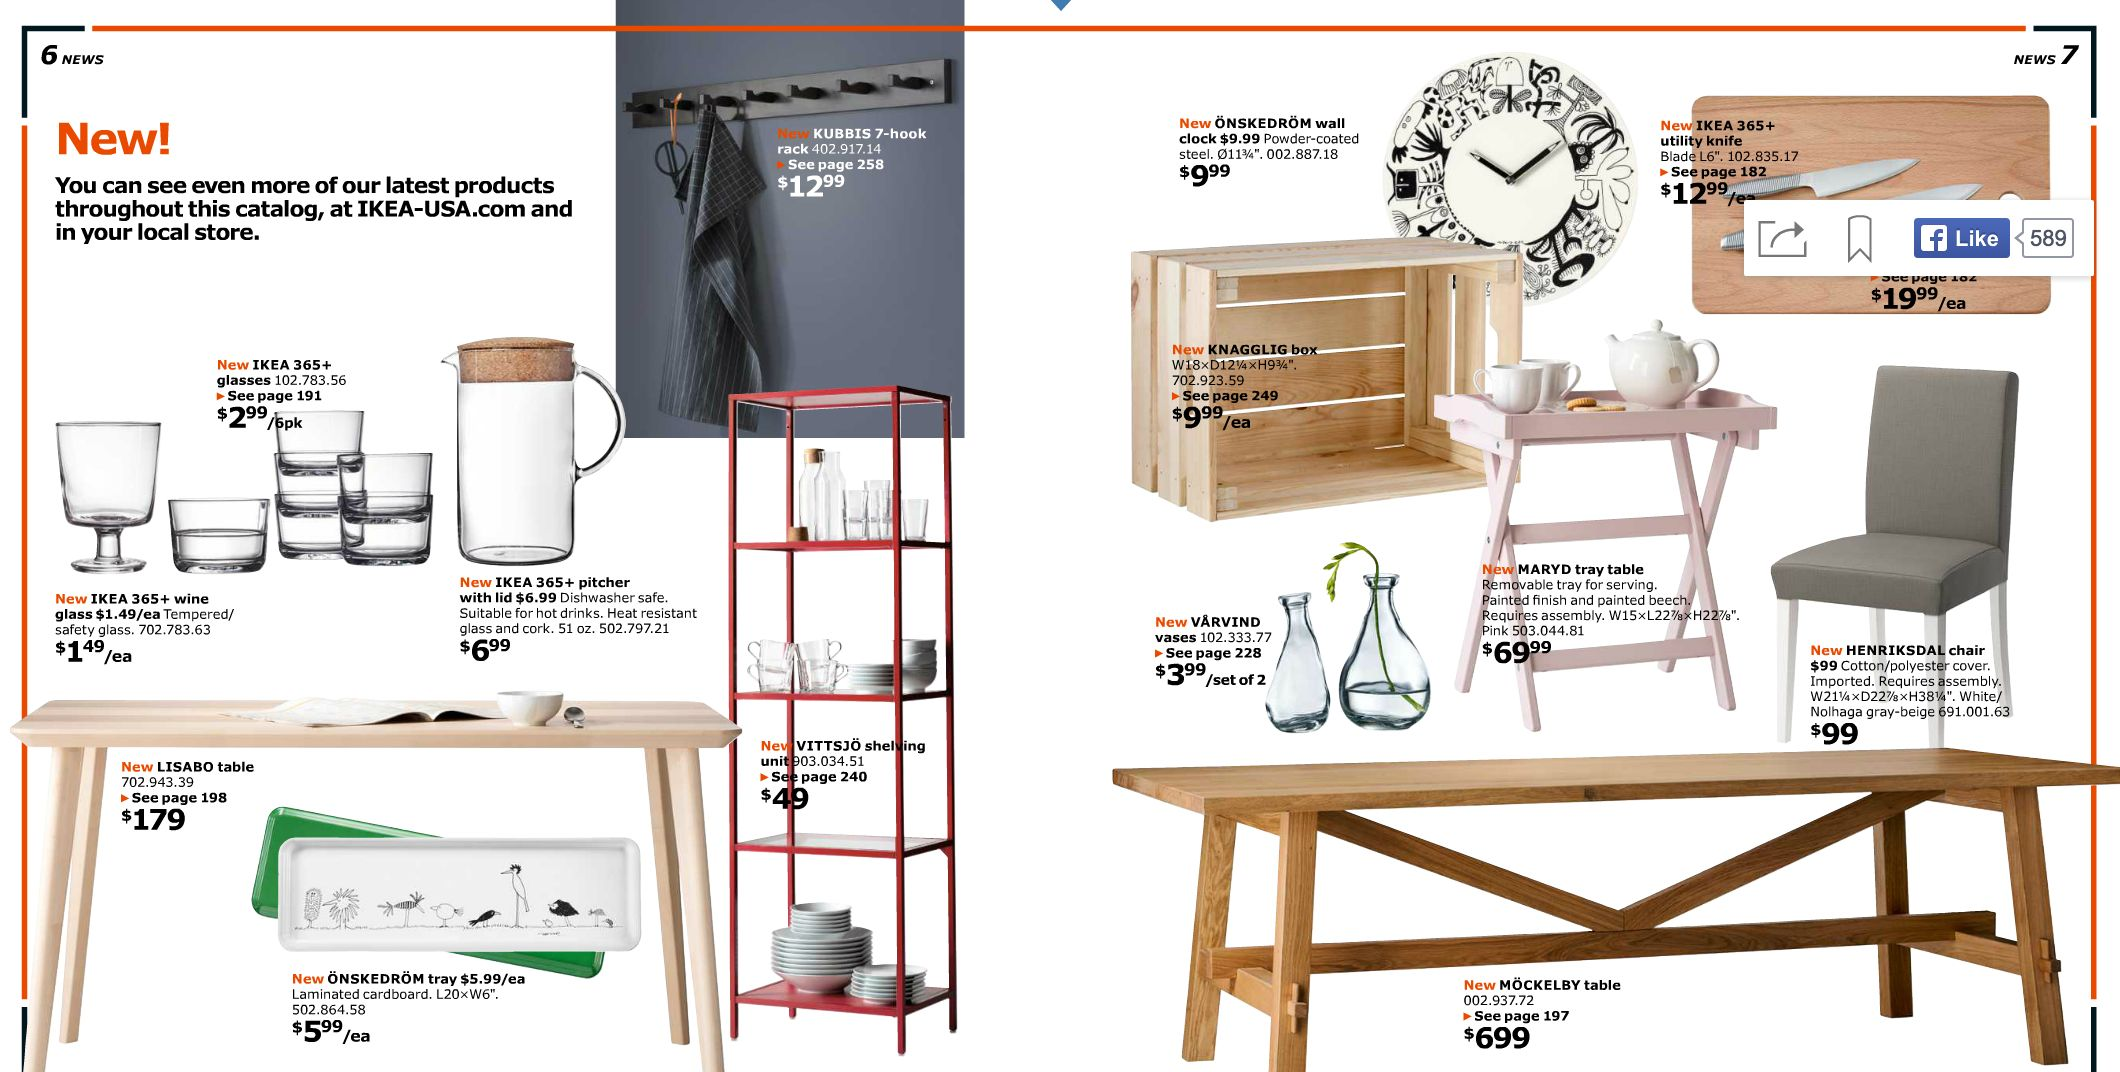 Ikea Büromöbel Katalog 2017 Furniture Finds Our 10 Favorite Items From The 2016 Ikea